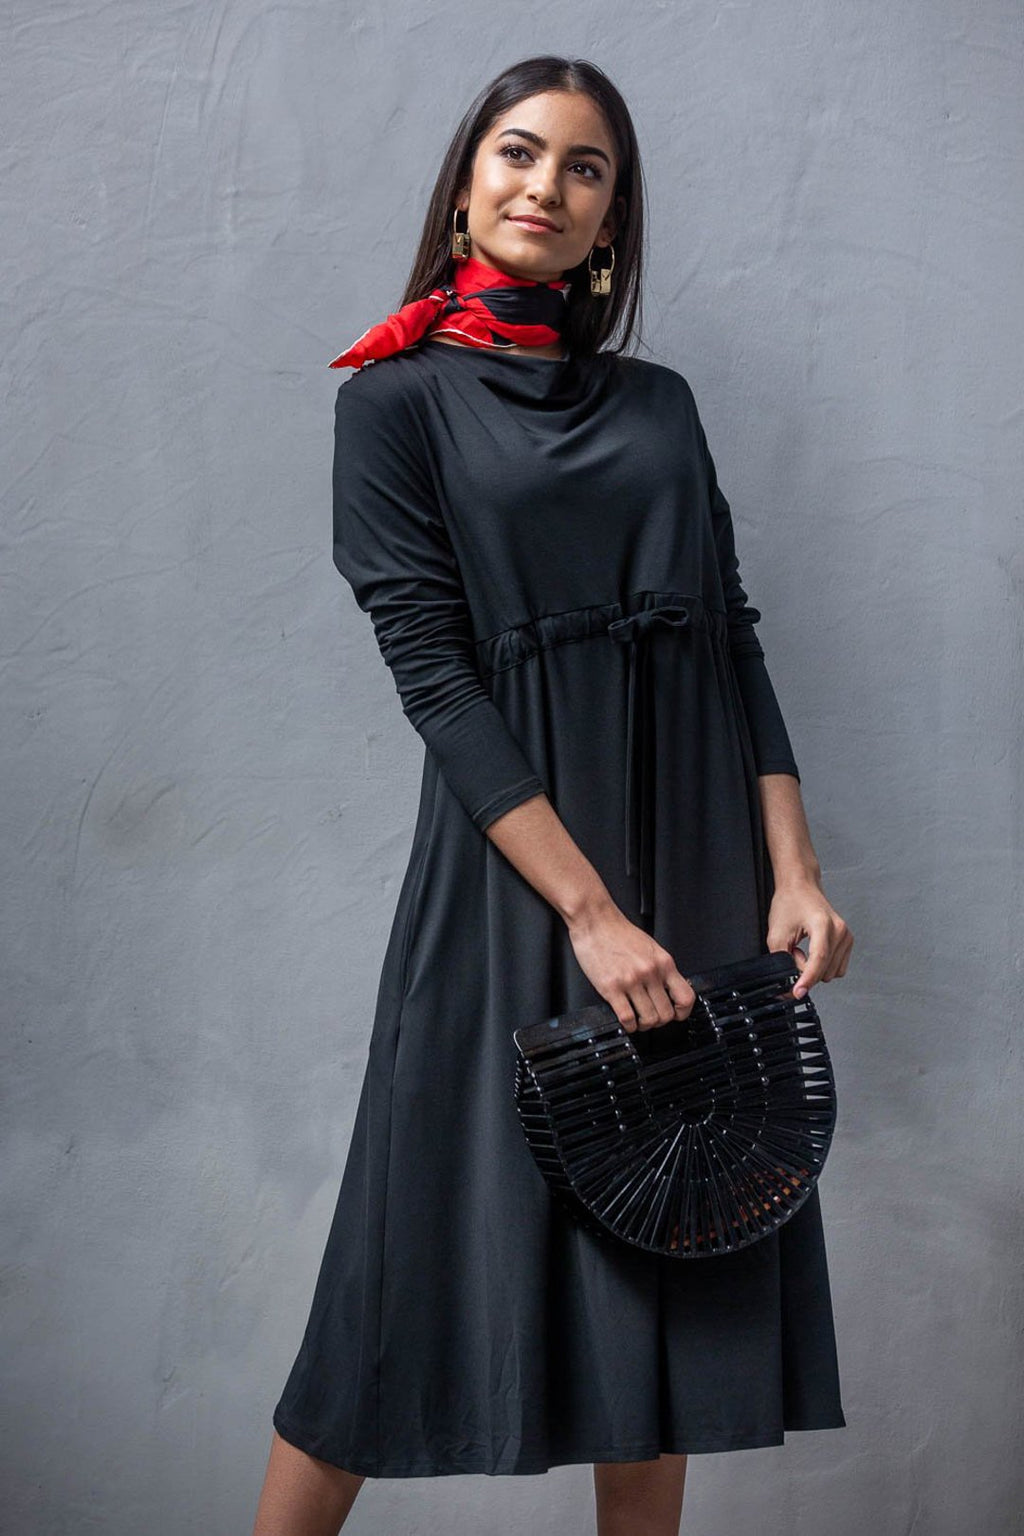 Deborah Black Dress - Sarah Feldman Modest Clothing